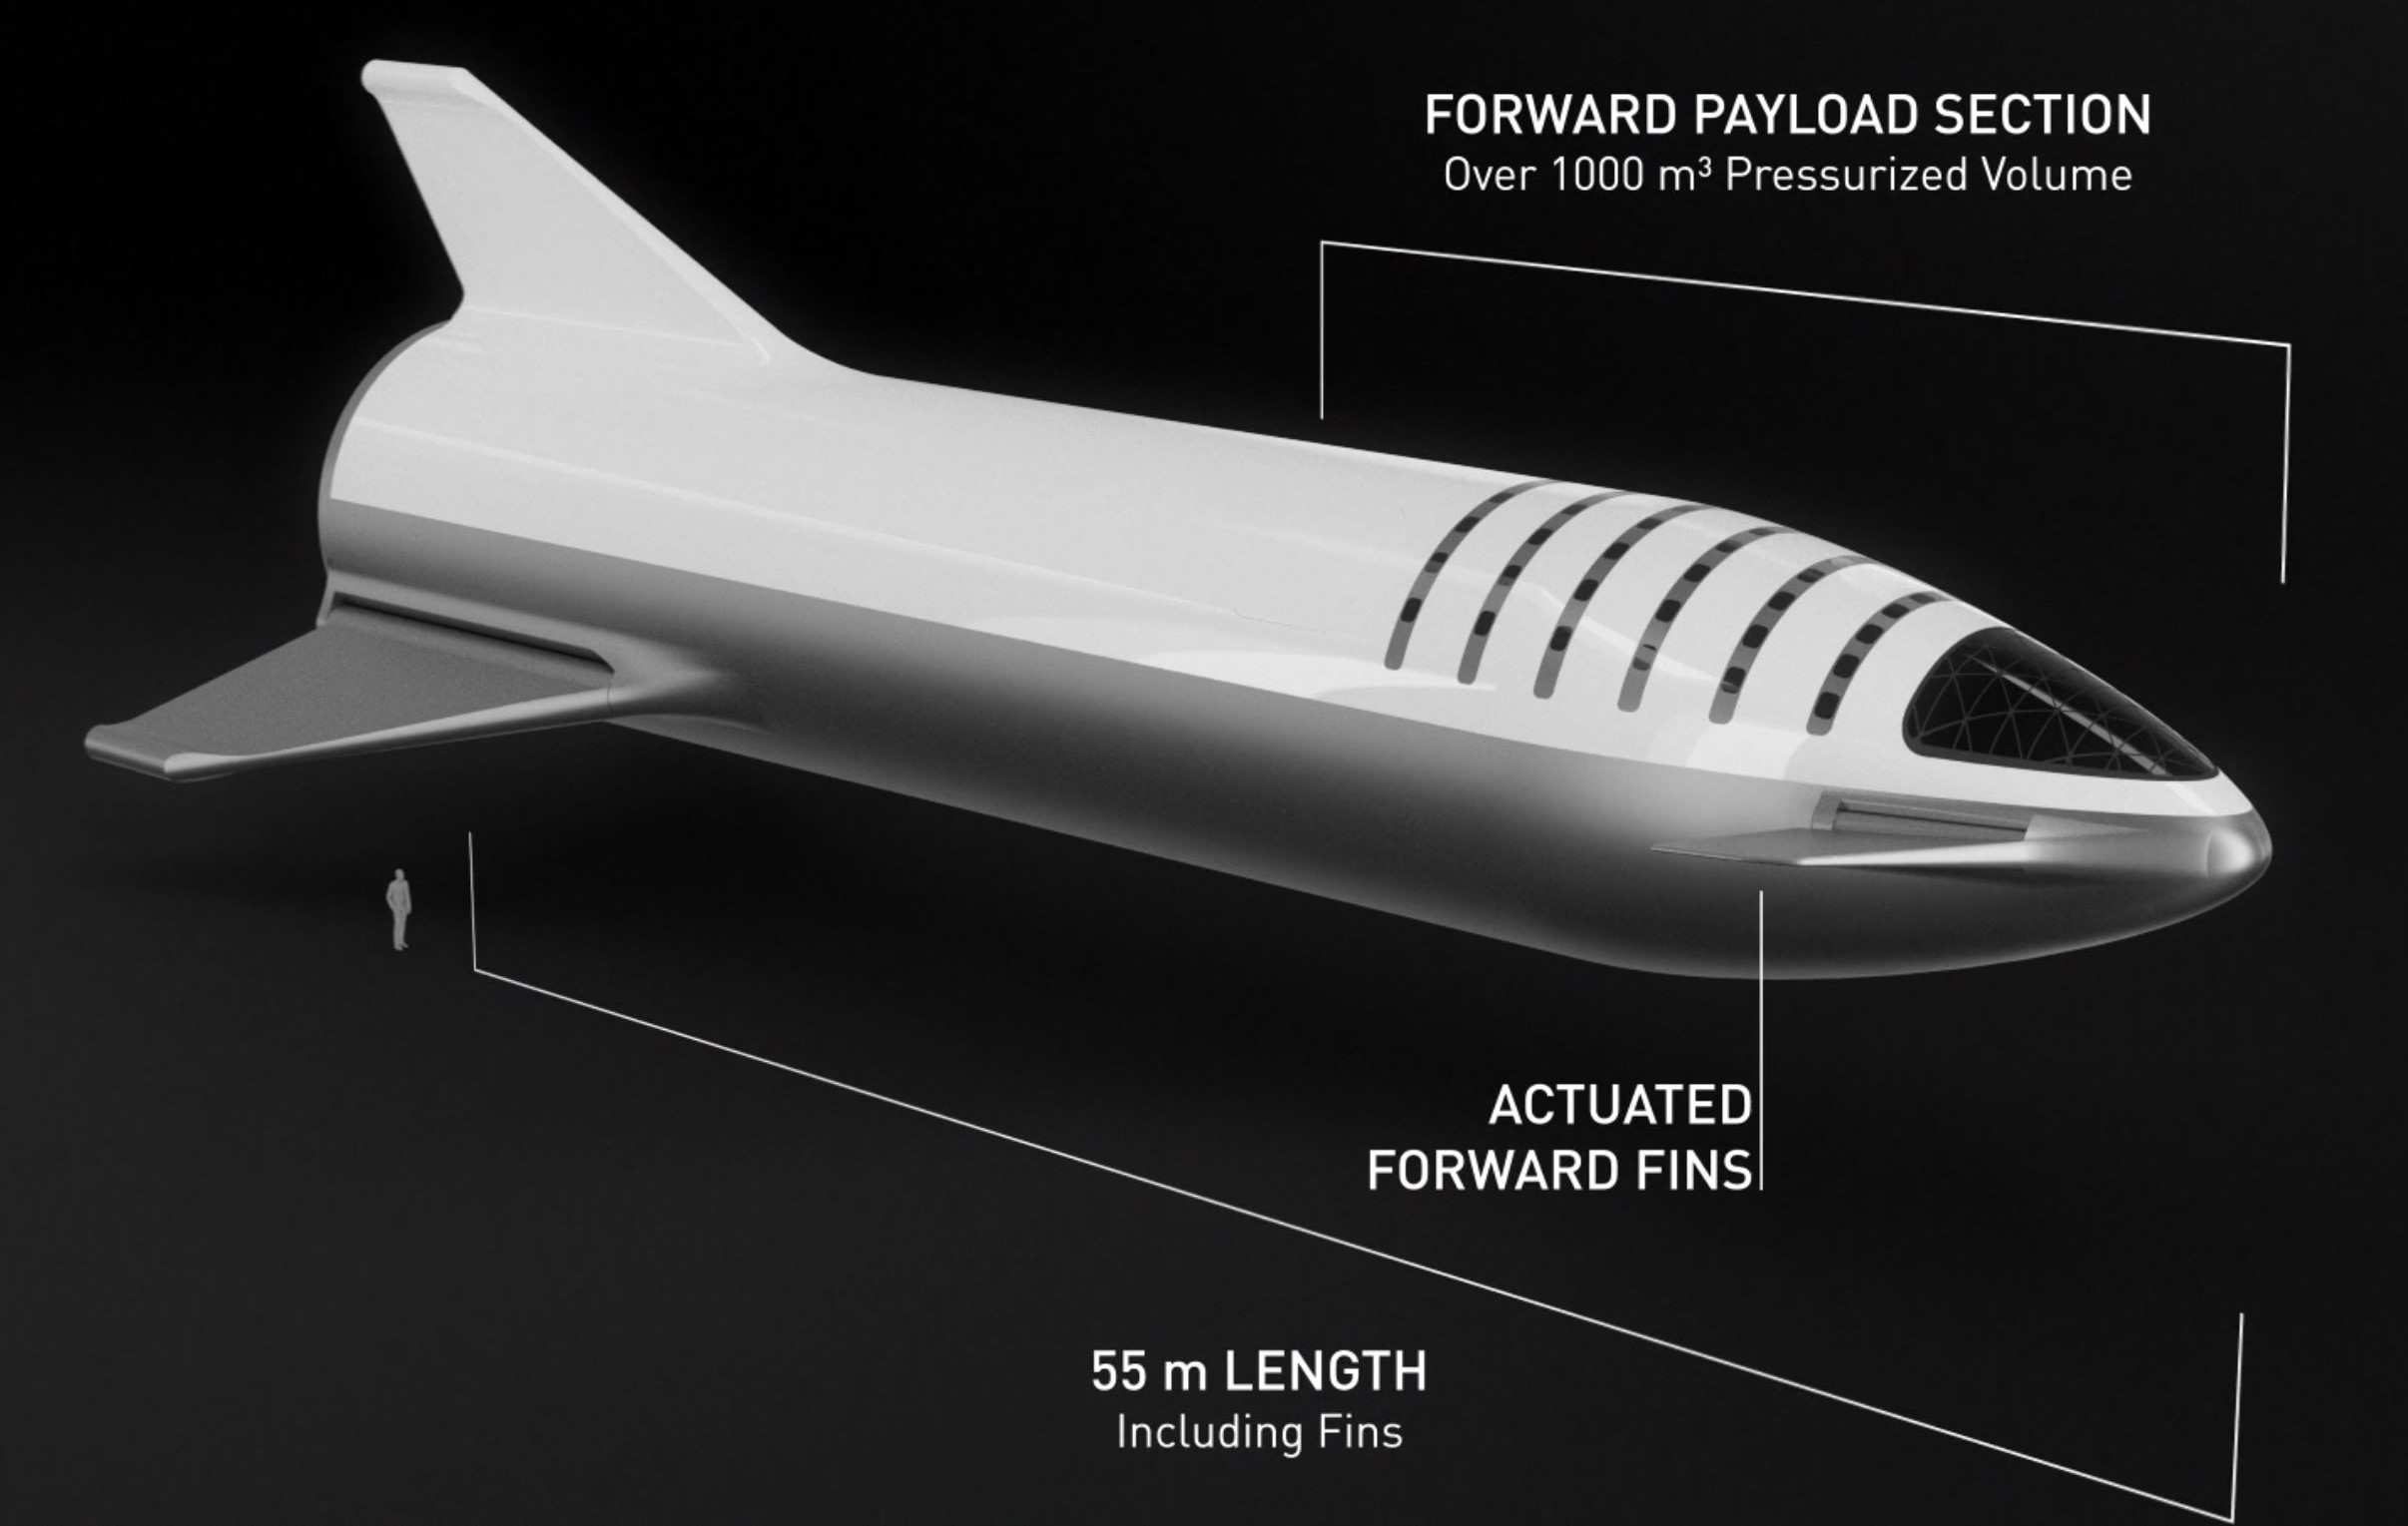 Bfr 2018 Spaceship Overview Spacex 1 Teslarati